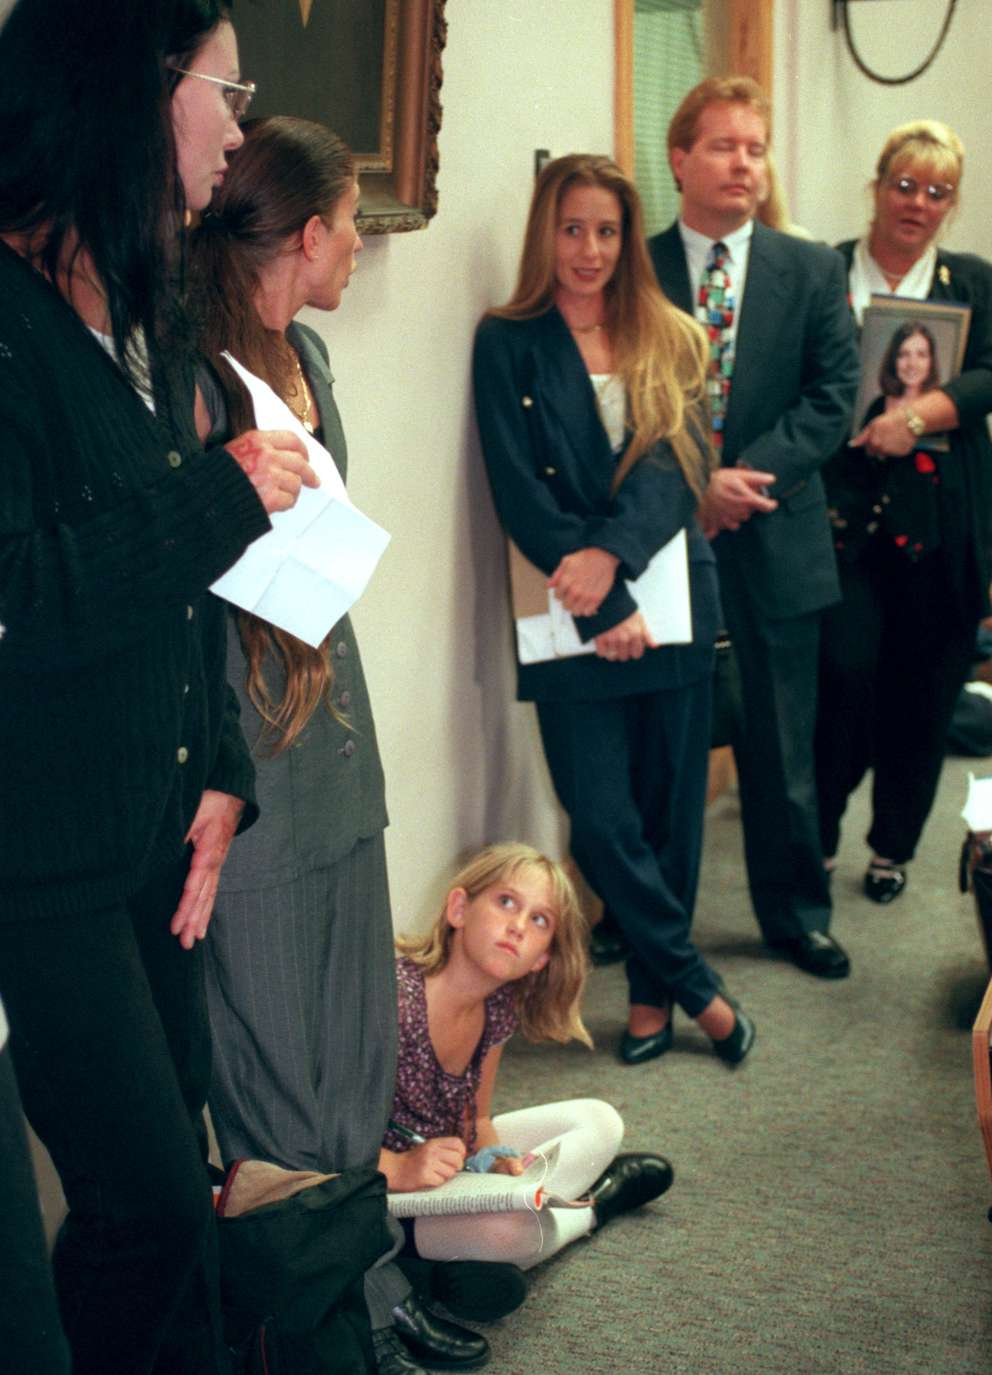 Dancers and their families gather along the wall waiting their turn to speak to the Tampa City Council. The public hearing was held to discuss a proposed new lap dancing ordinance under consideration by the City of Tampa. The dancers said the lap dance ban would spread hardship, not stem the spread of lawlessness and disease. Times (1999)